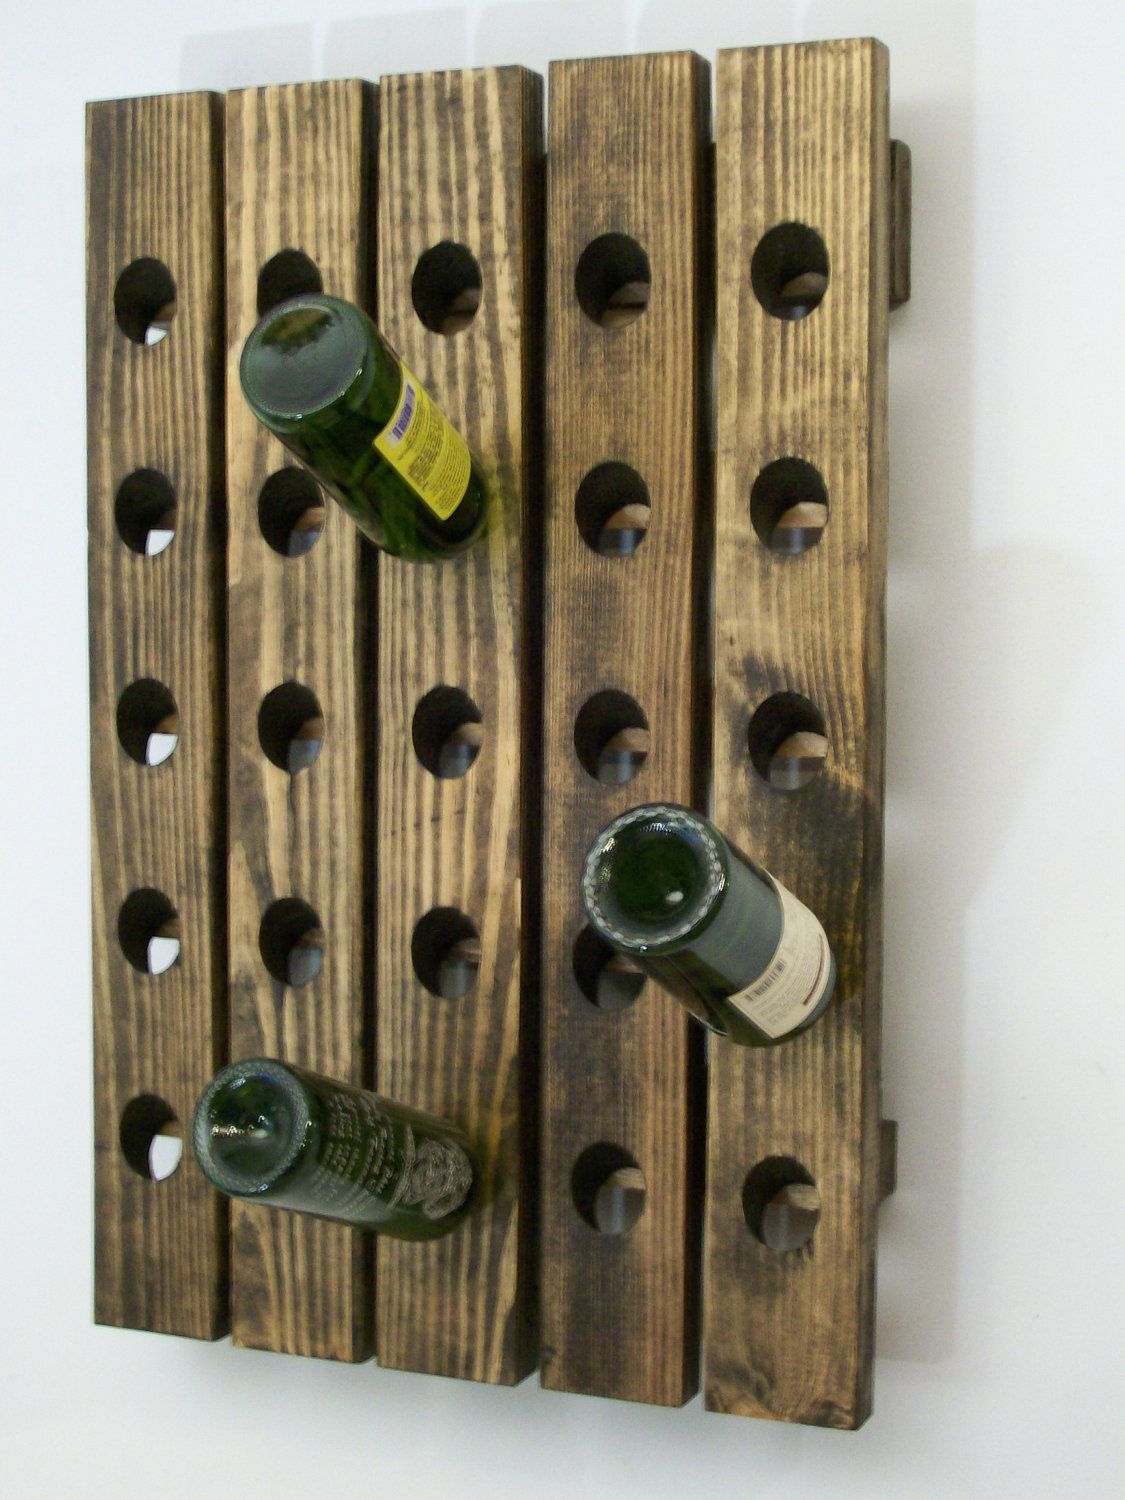 Antique Wooden Wine Rack Riddling Wine Rack Handcrafted Wood Wall Hanging For